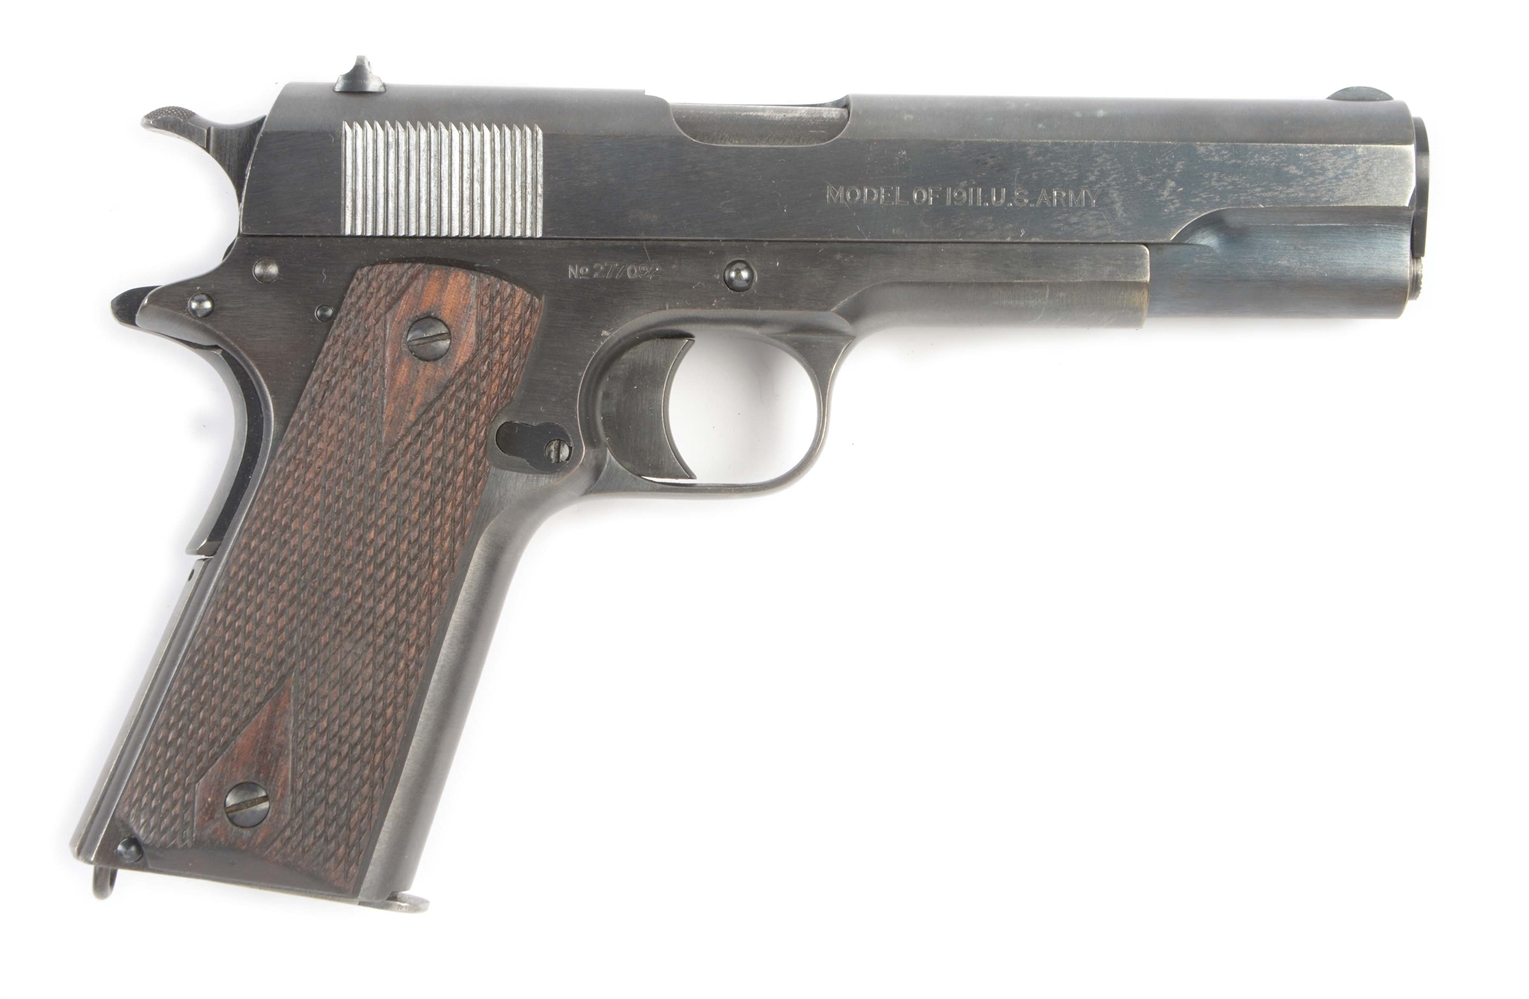 (C) HIGH CONDITION COLT MODEL 1911 US ARMY SEMI-AUTOMATIC PISTOL (1918).